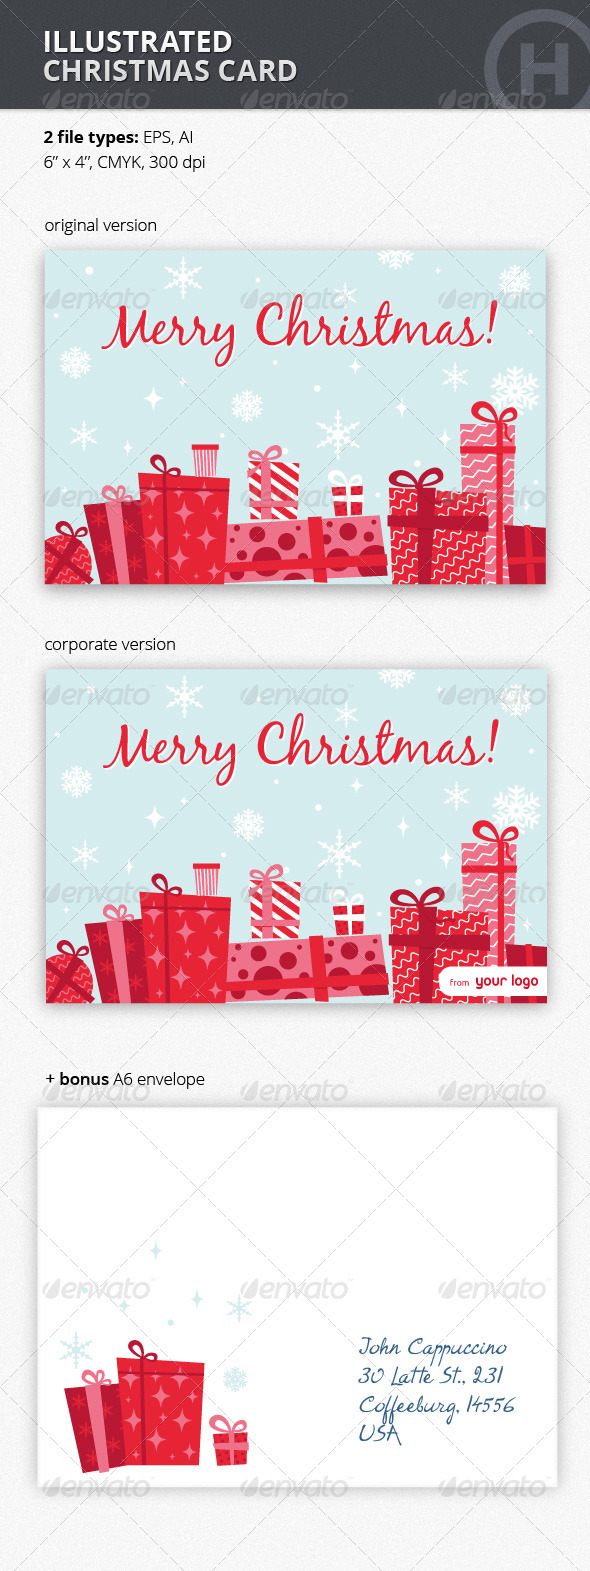 GraphicRiver Illustrated Christmas Card 3184526